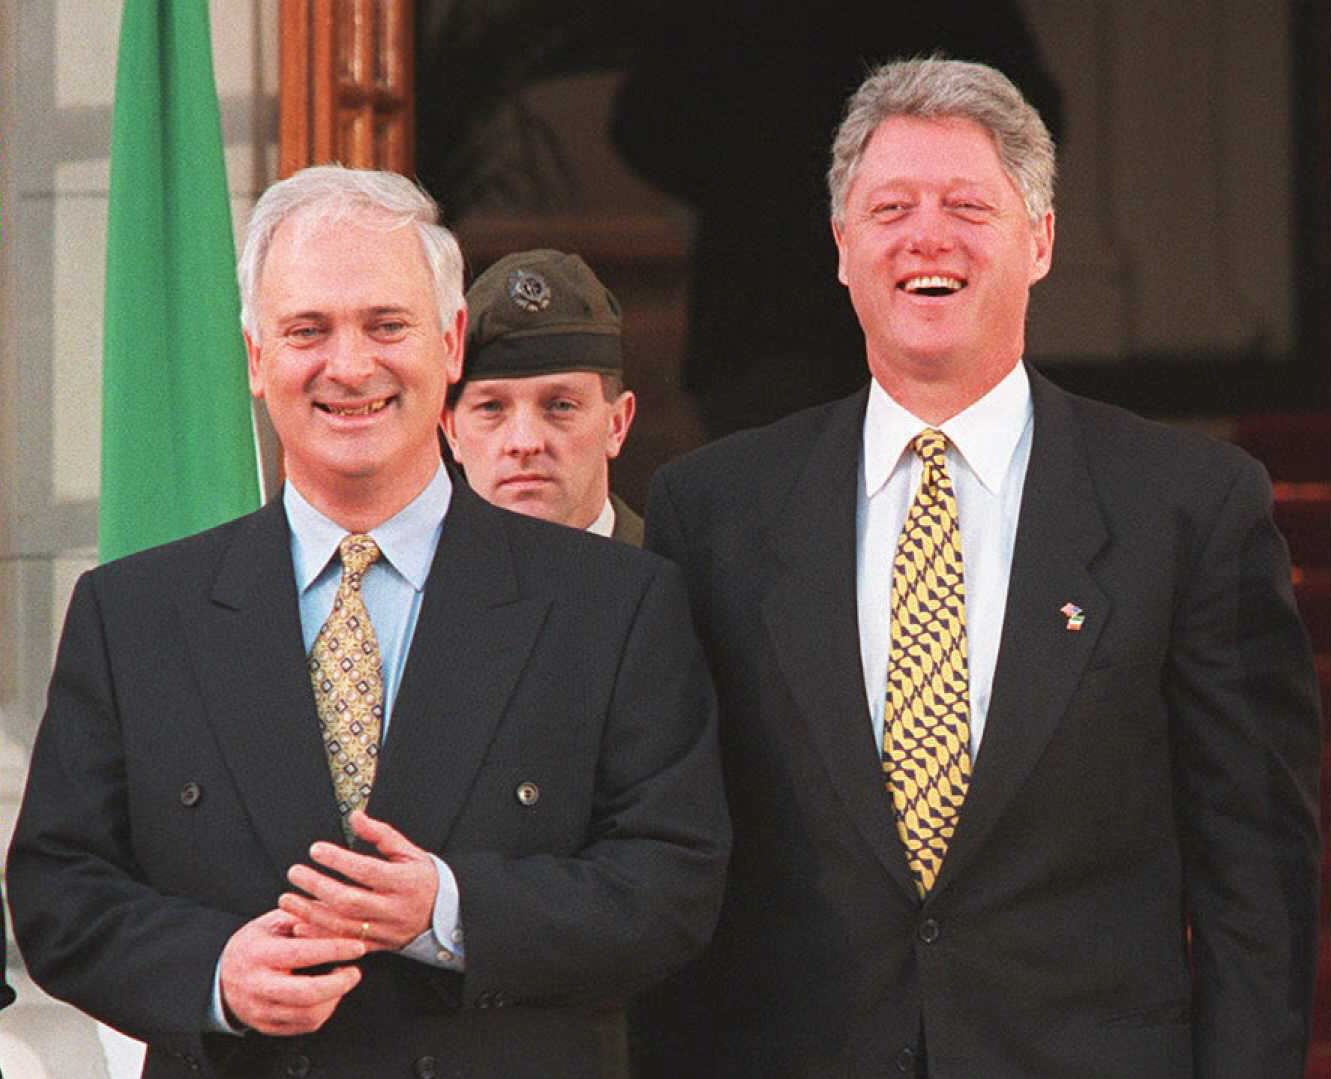 DUBLIN, IRELAND - DECEMBER 1: US President Bill Clinton (R) laughs with Irish Prime Minister John Bruton (L) 01 December before a meeting in which they discussed Bosnia and the Northern Ireland peace process. Clinton is on the first day of a two-day visit to Ireland. AFP PHOTO (Photo credit should read PATRICK KOVARIK/AFP/Getty Images)